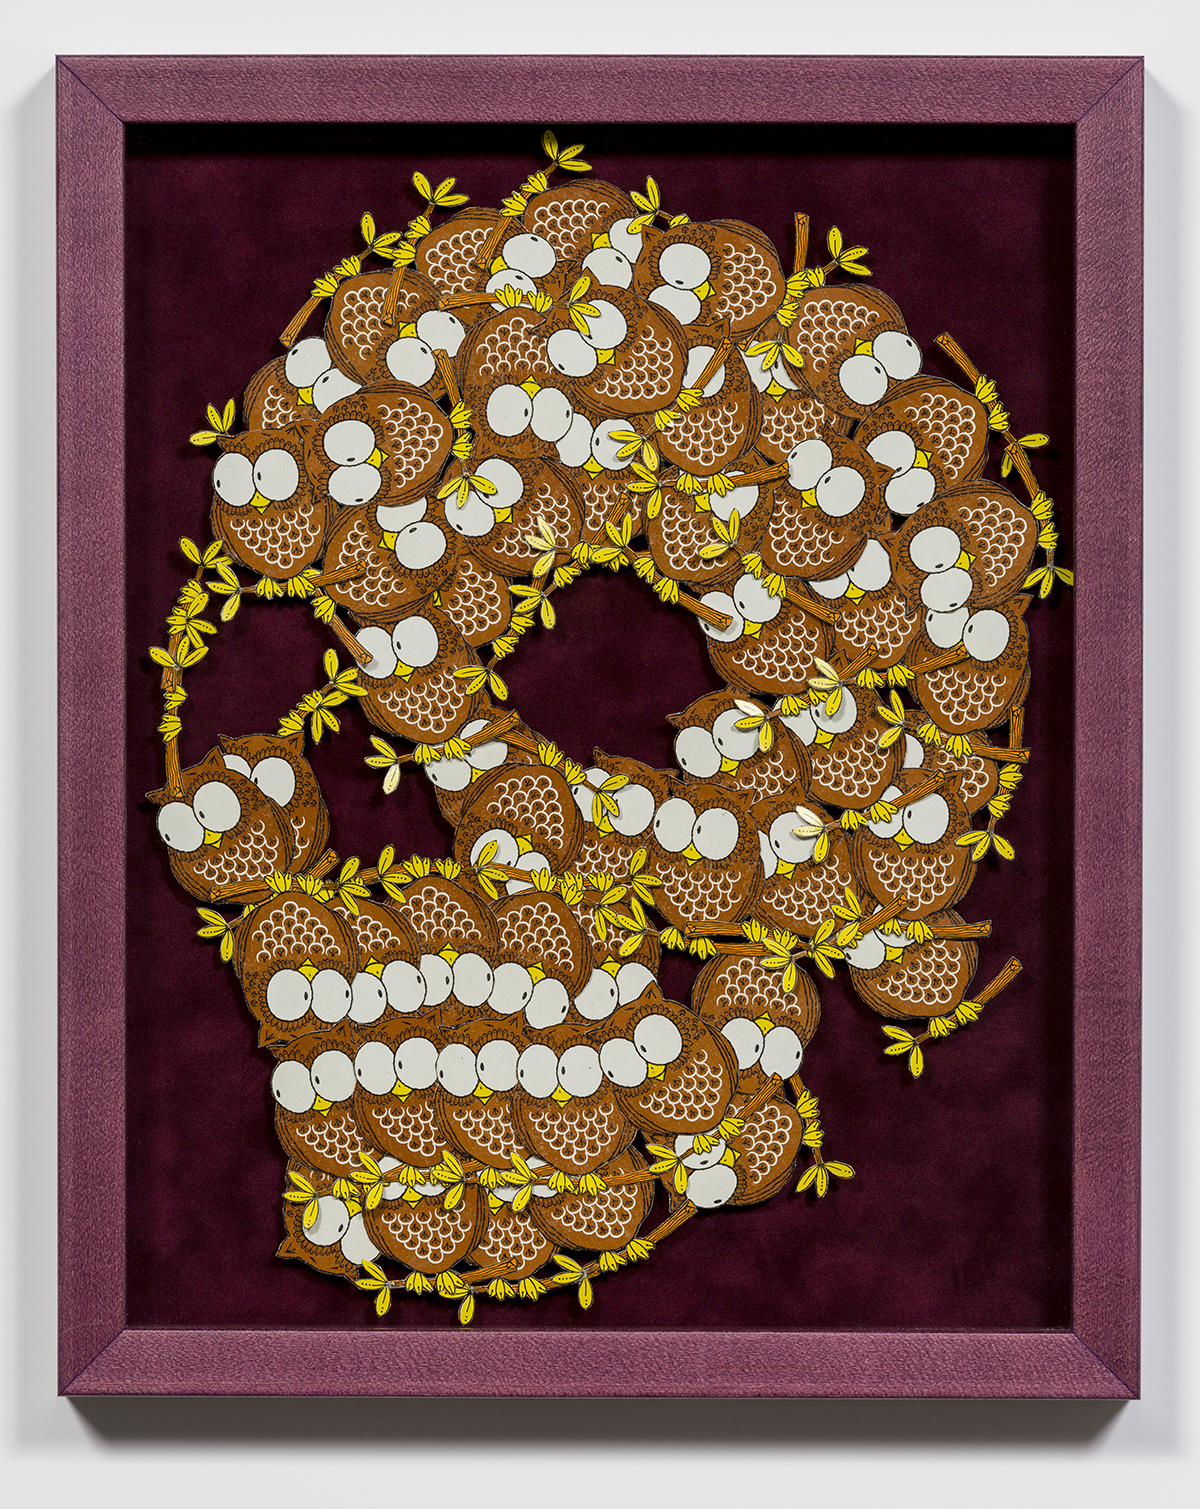 "Lucien Durey, ""Apparition IV"", 2017, Playing Card Collage on Flocked Mat Board, 12.75 x 15.75, Framed. Estimate: $700."